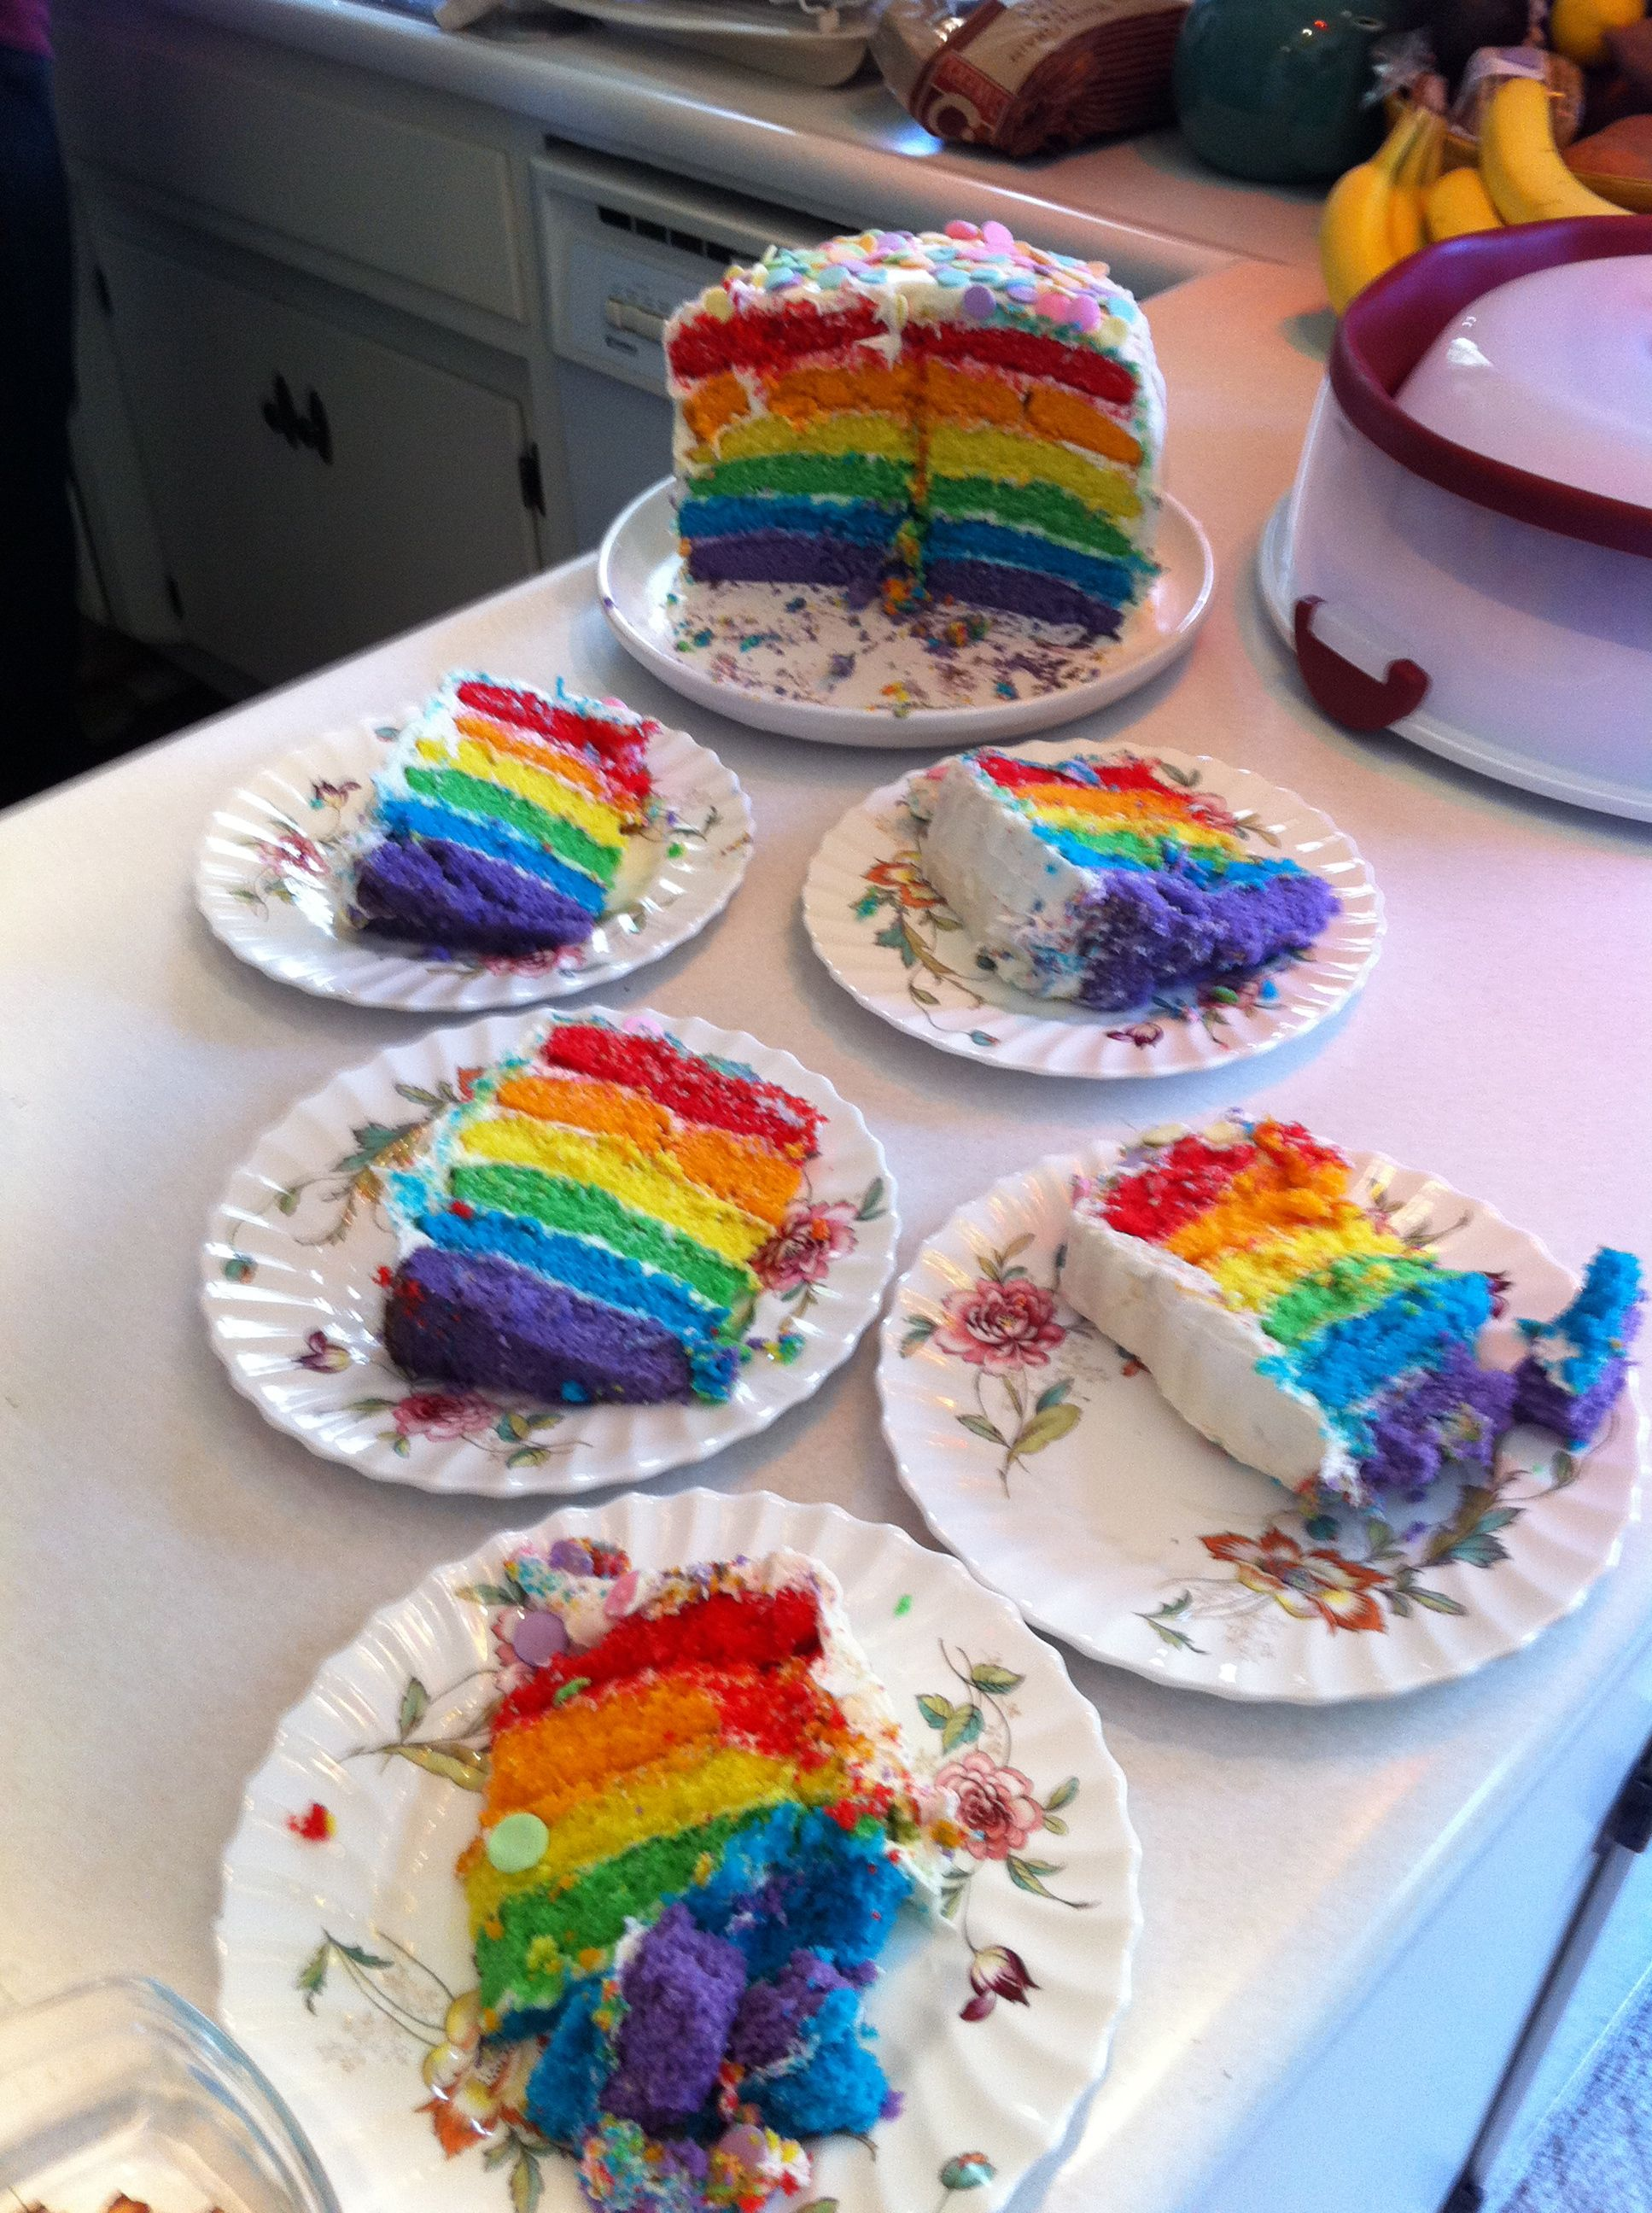 I enjoyed copying the wonderful Rainbow Cake immensely.